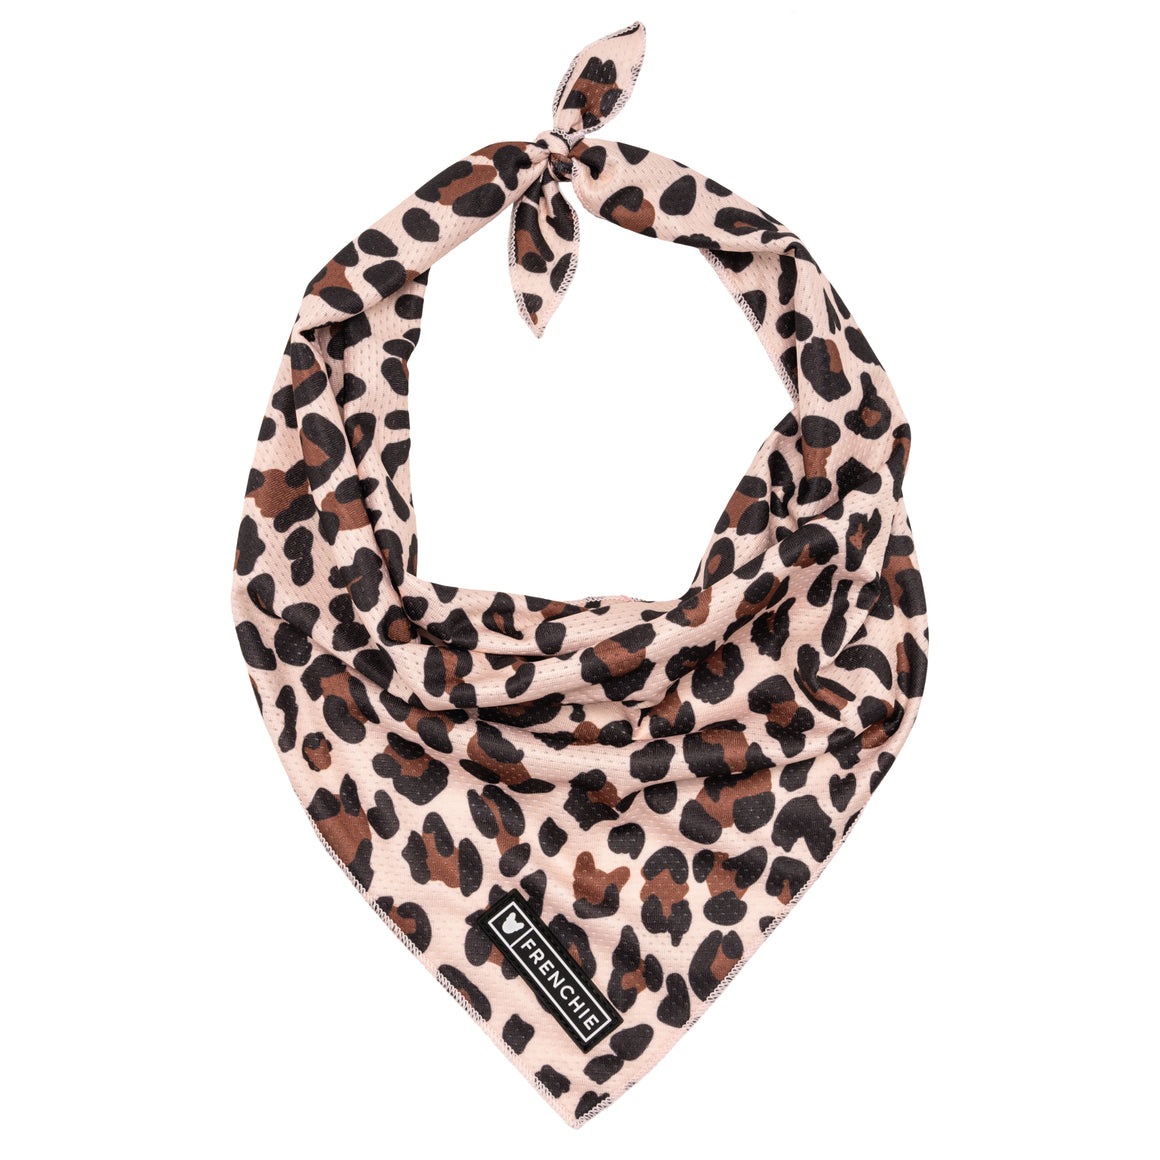 Frenchie Cooling Bandana- The Leo